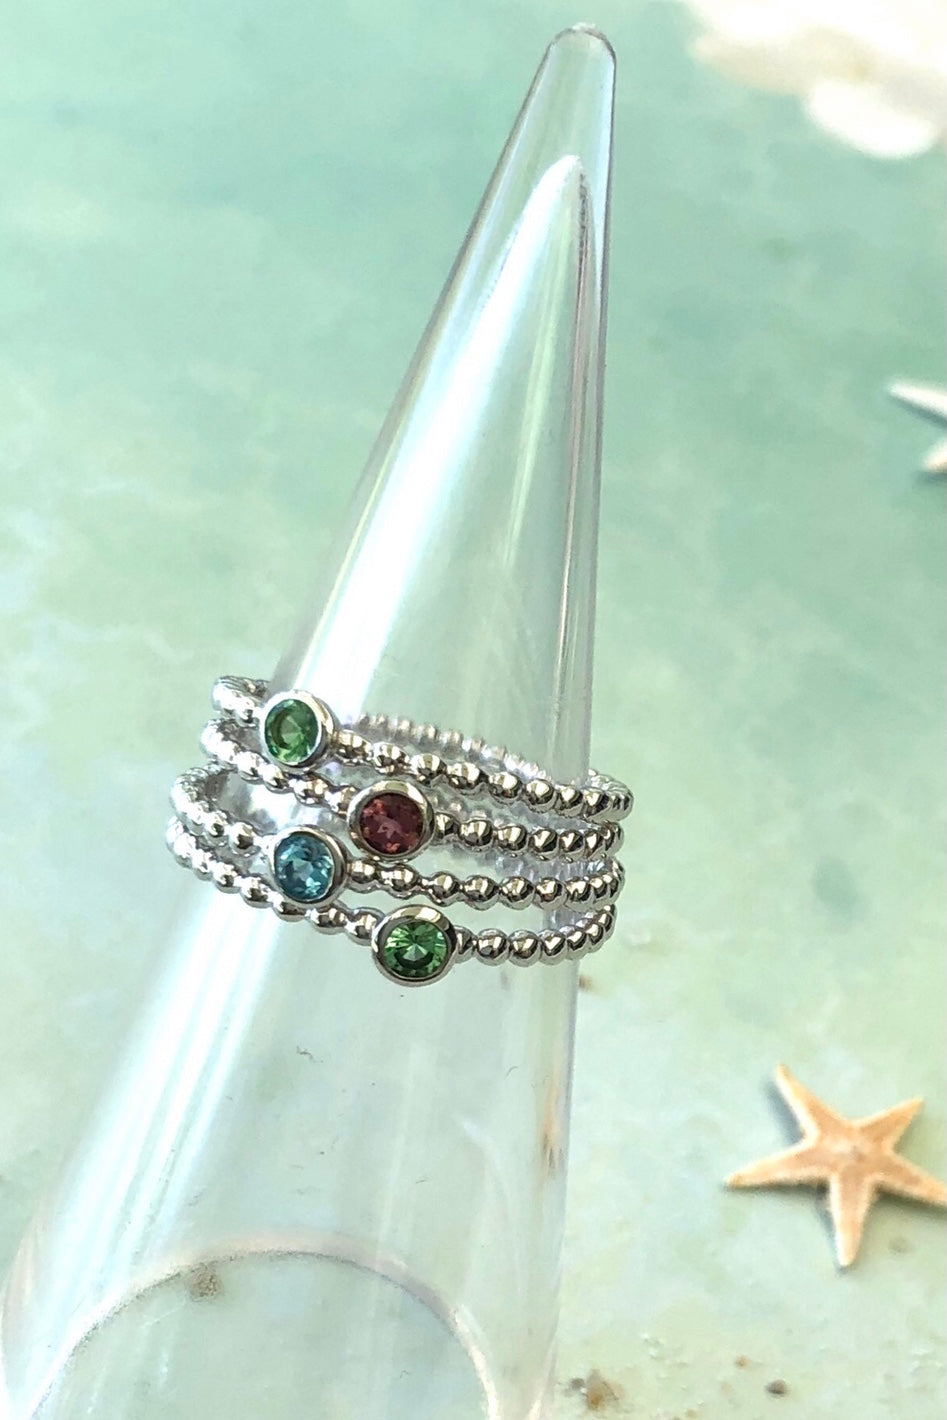 These oh so pretty little pinky red rings can be worn as a single or as a stacking ring. 925 silver with a tiny precious gemstone